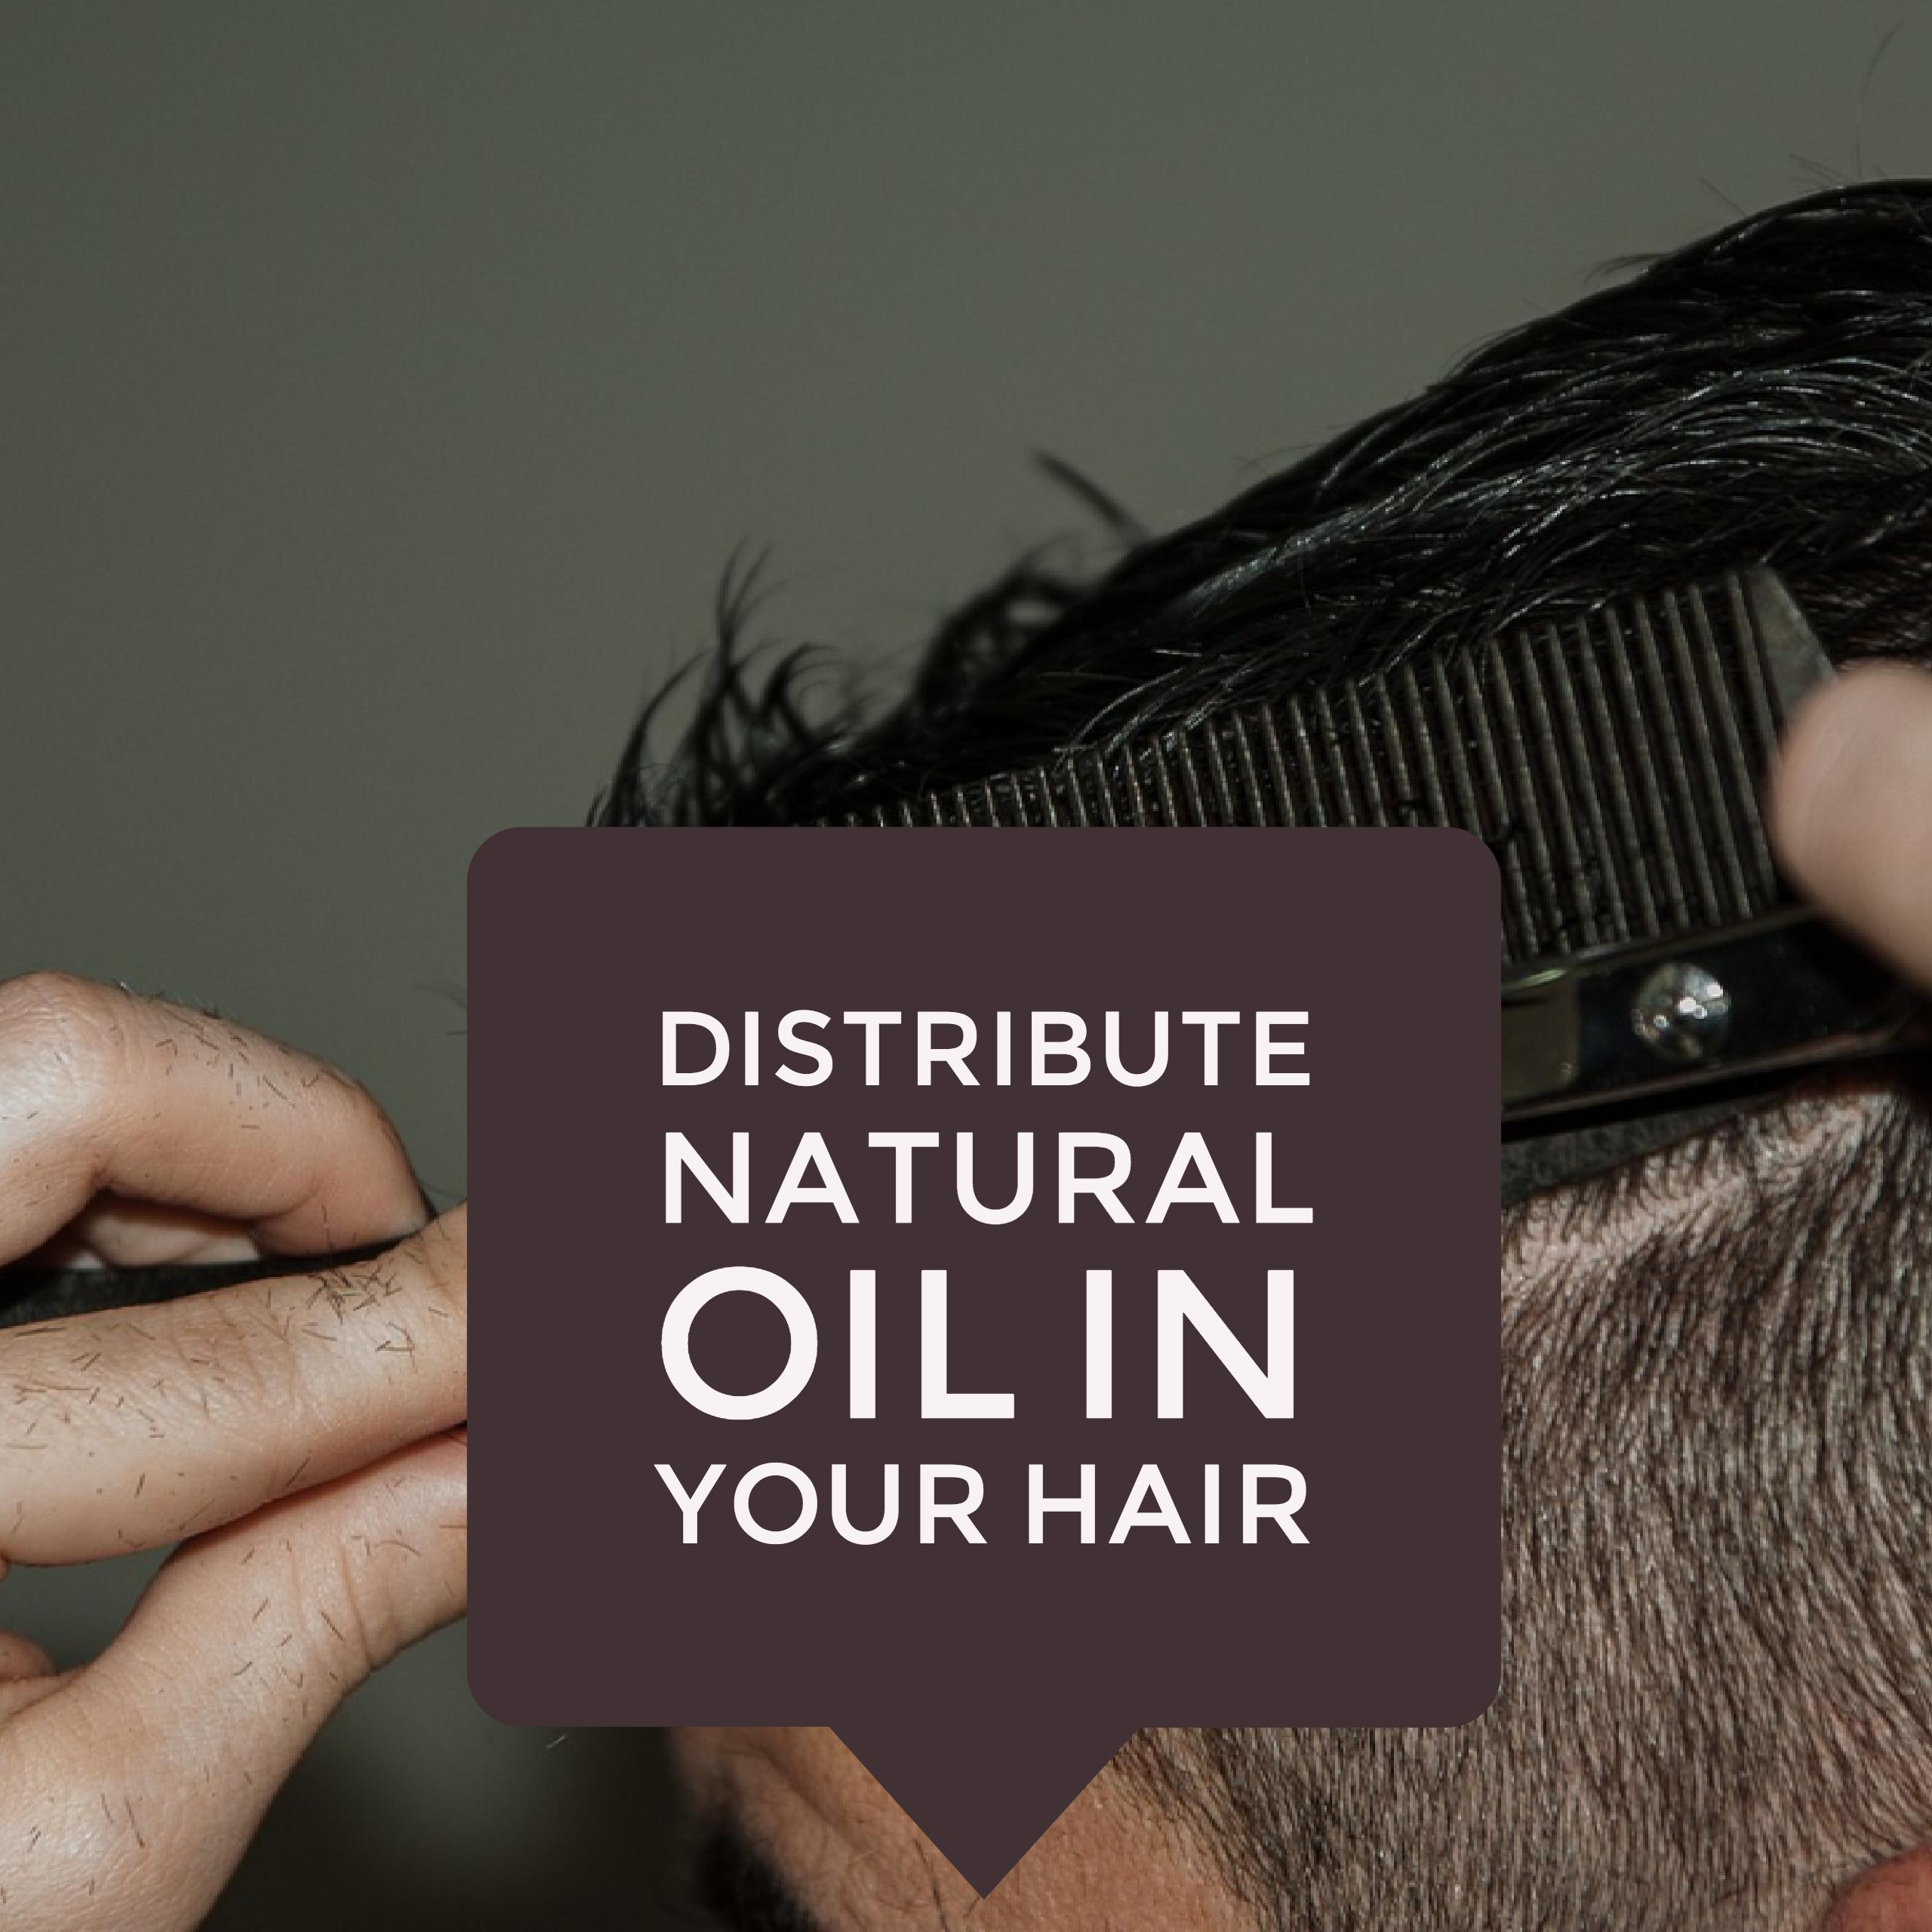 The CHI Straightening System images